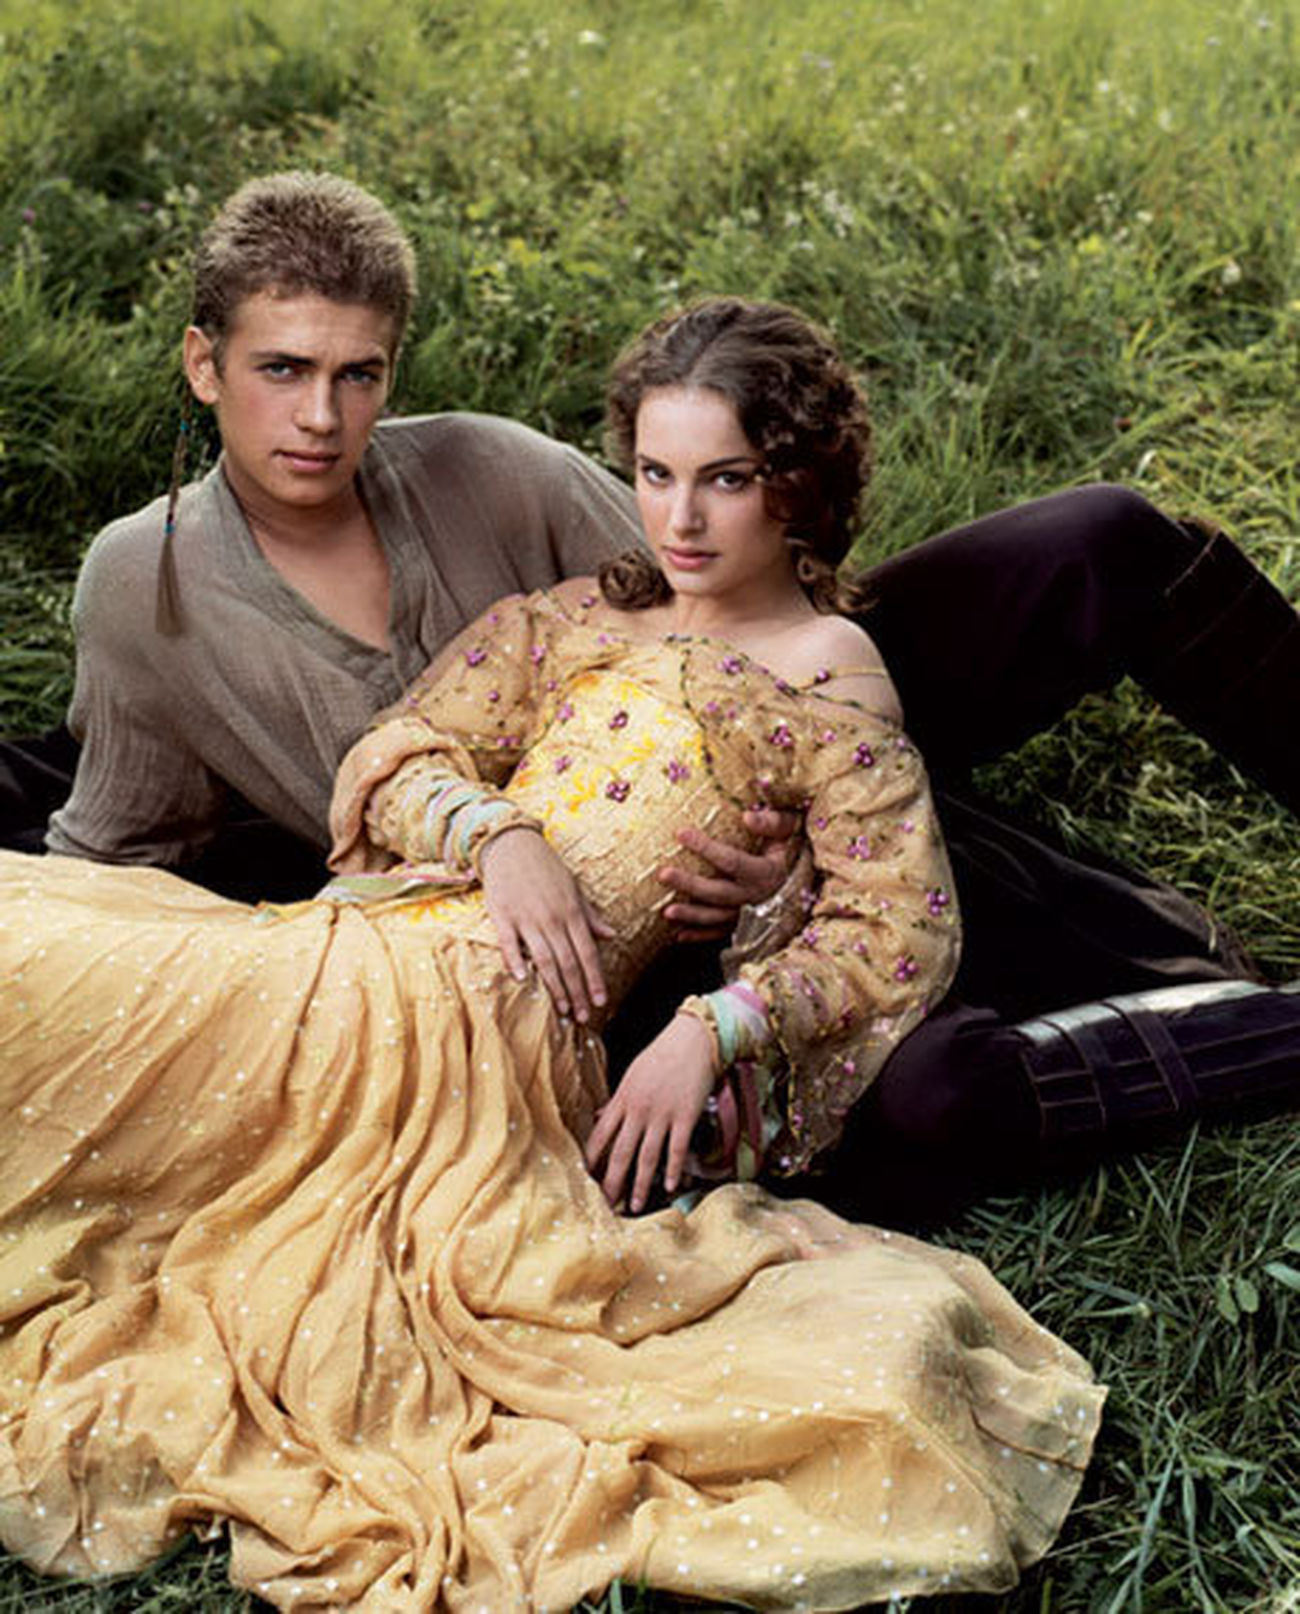 Lovingstarwars Starwars Thesecond MOVIE Padmé Amidala Anikin Skywalker Padmeandanikin Nature Love Waching Movie Mustwachthis Starwarsislegendary 💋💜😘😃 Anakinandpadme Anakin AnakinSkywalker Padme